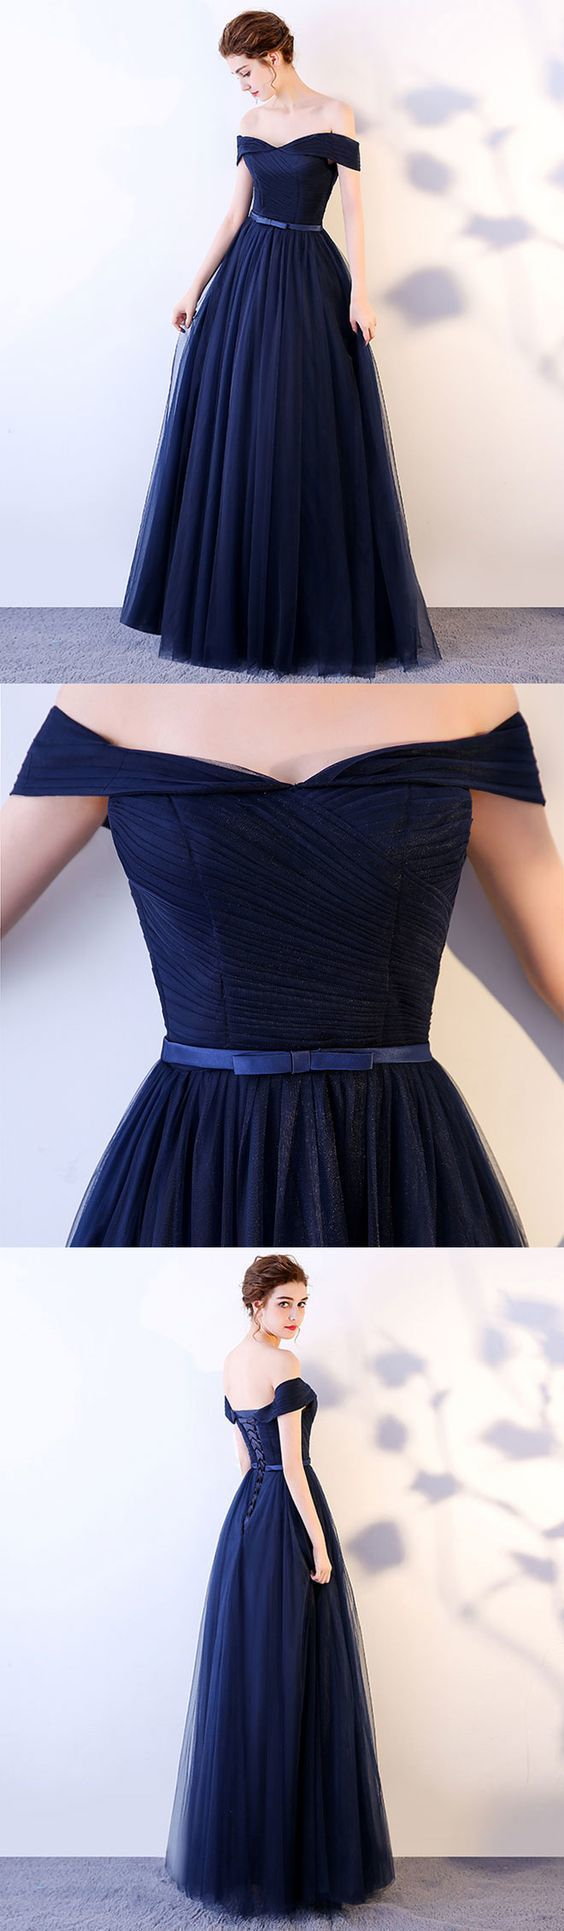 Navy Blue Handmade Party Dress 2019,Formal Gowns, Off Shoulder Wedding Party